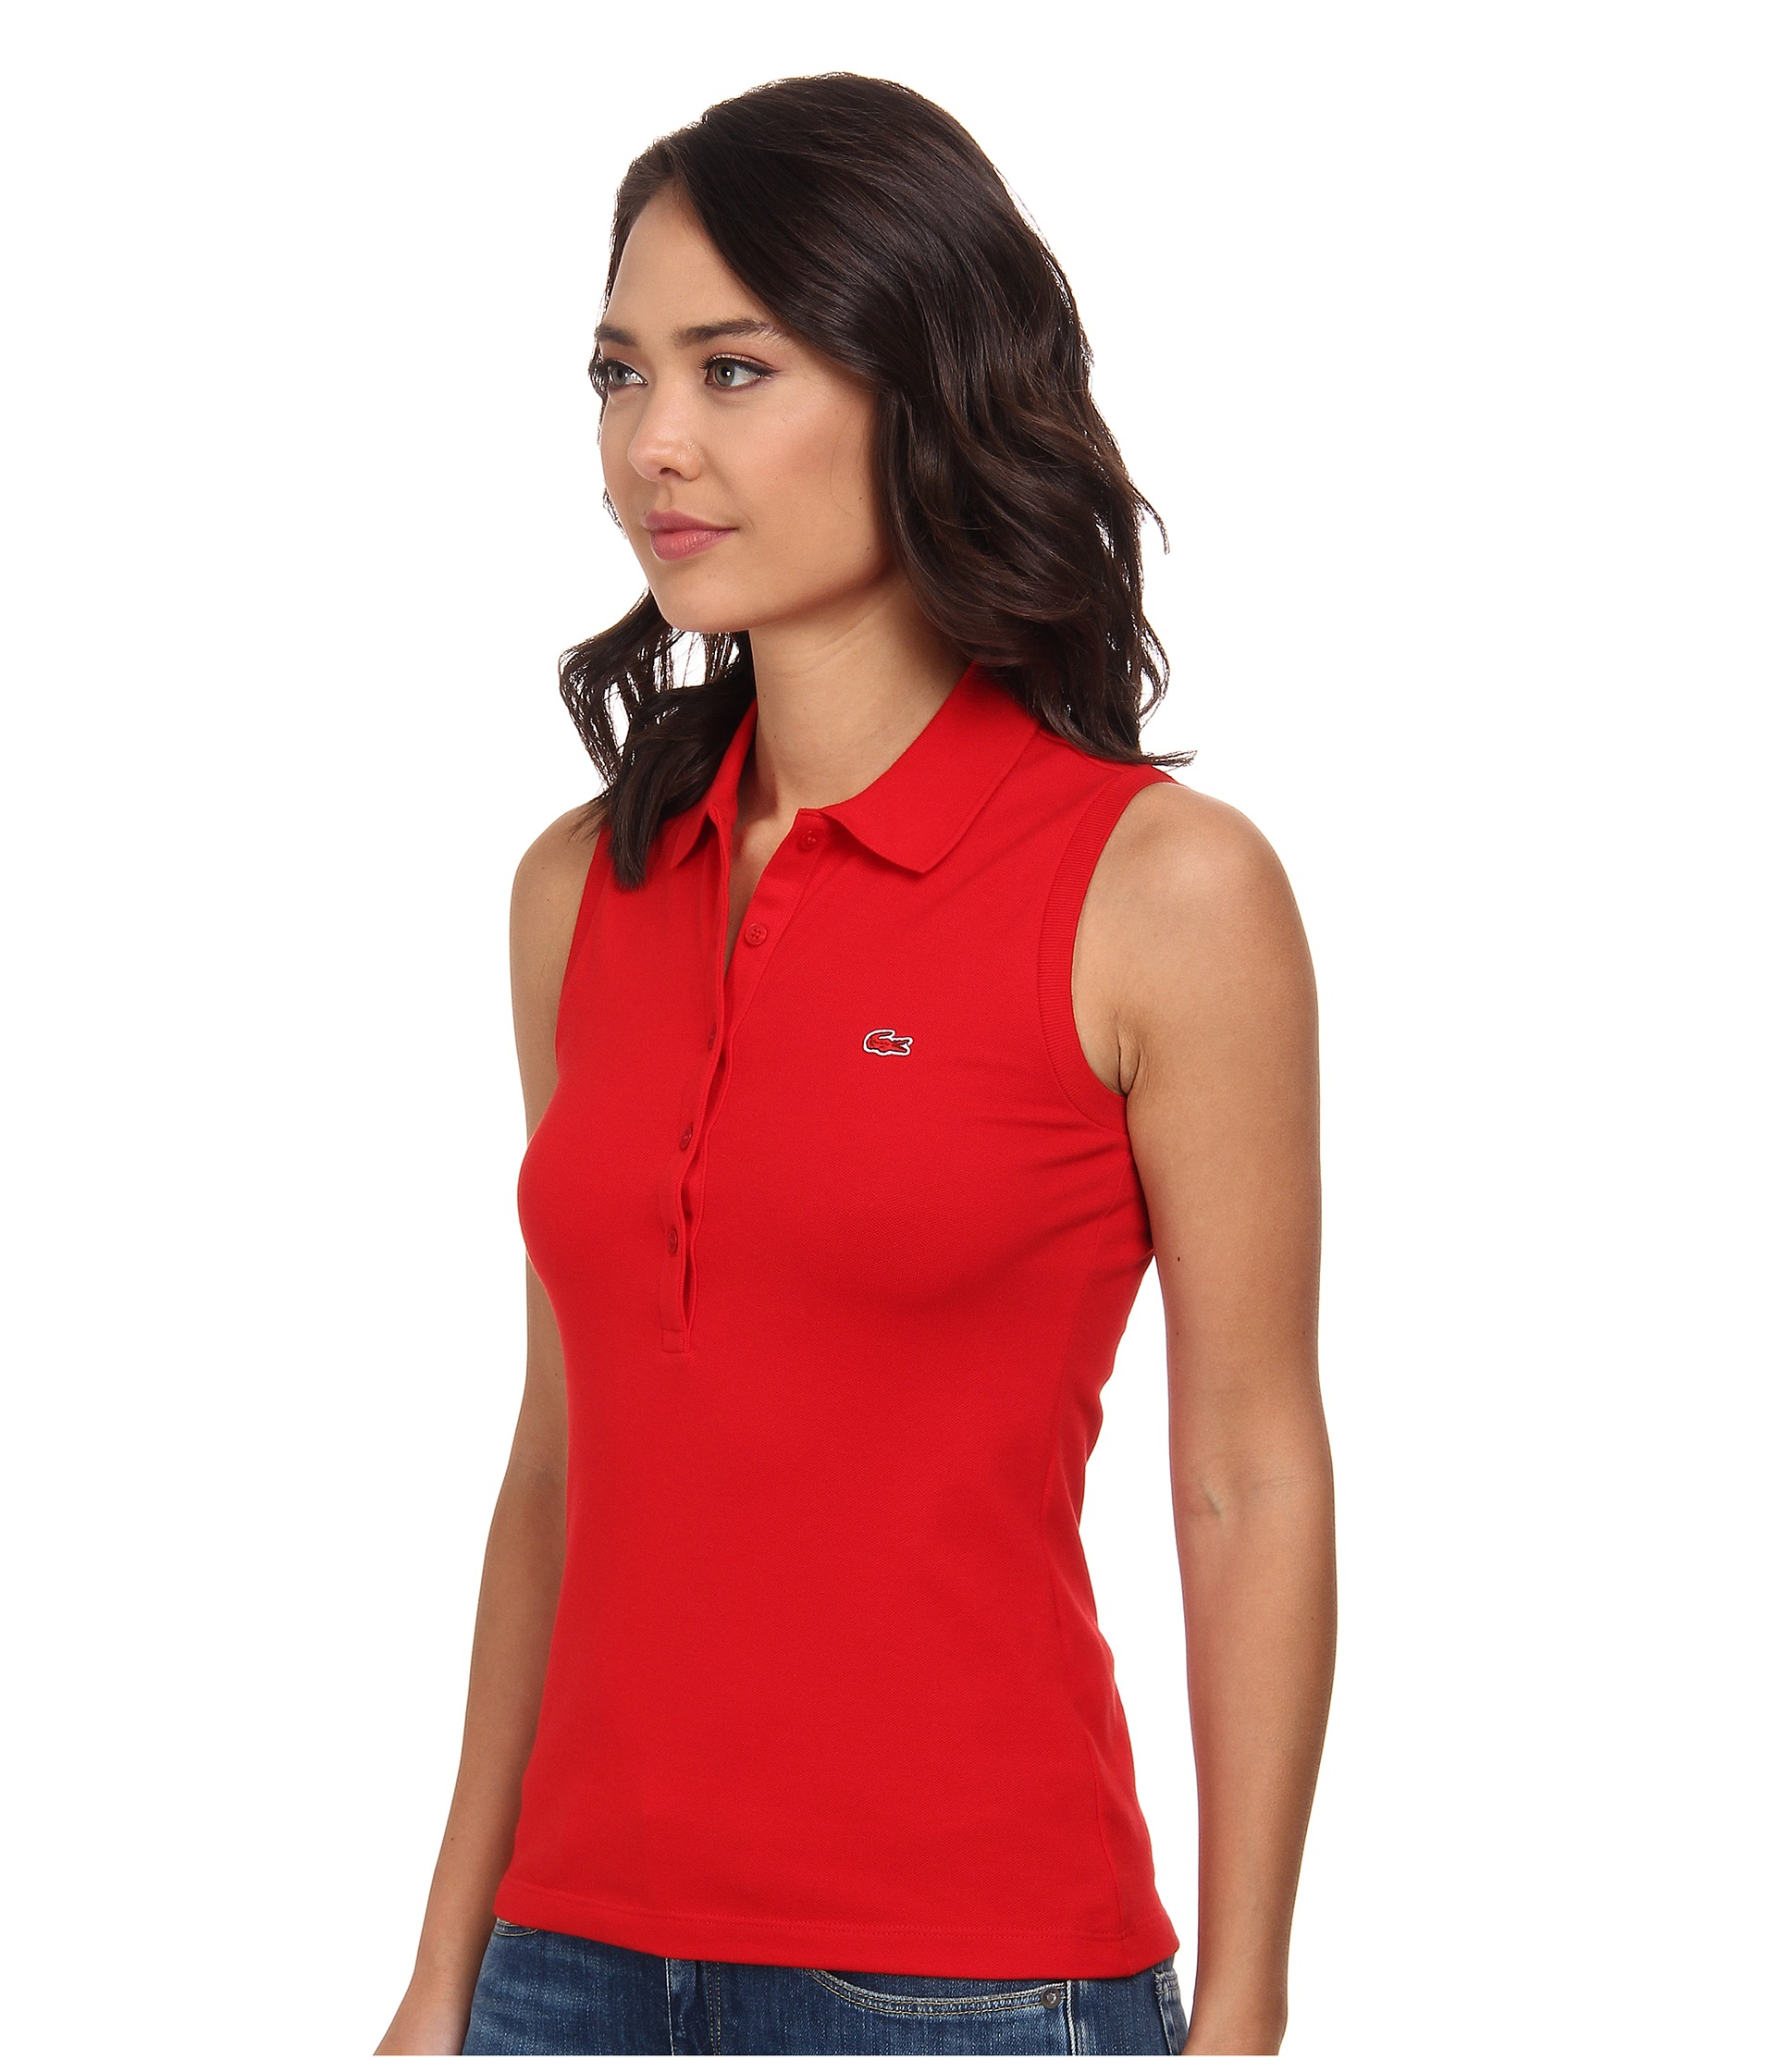 ba0a5a3bb78365 Lyst - Lacoste Sleeveless Slim Fit Stretch Pique Polo Shirt in Red